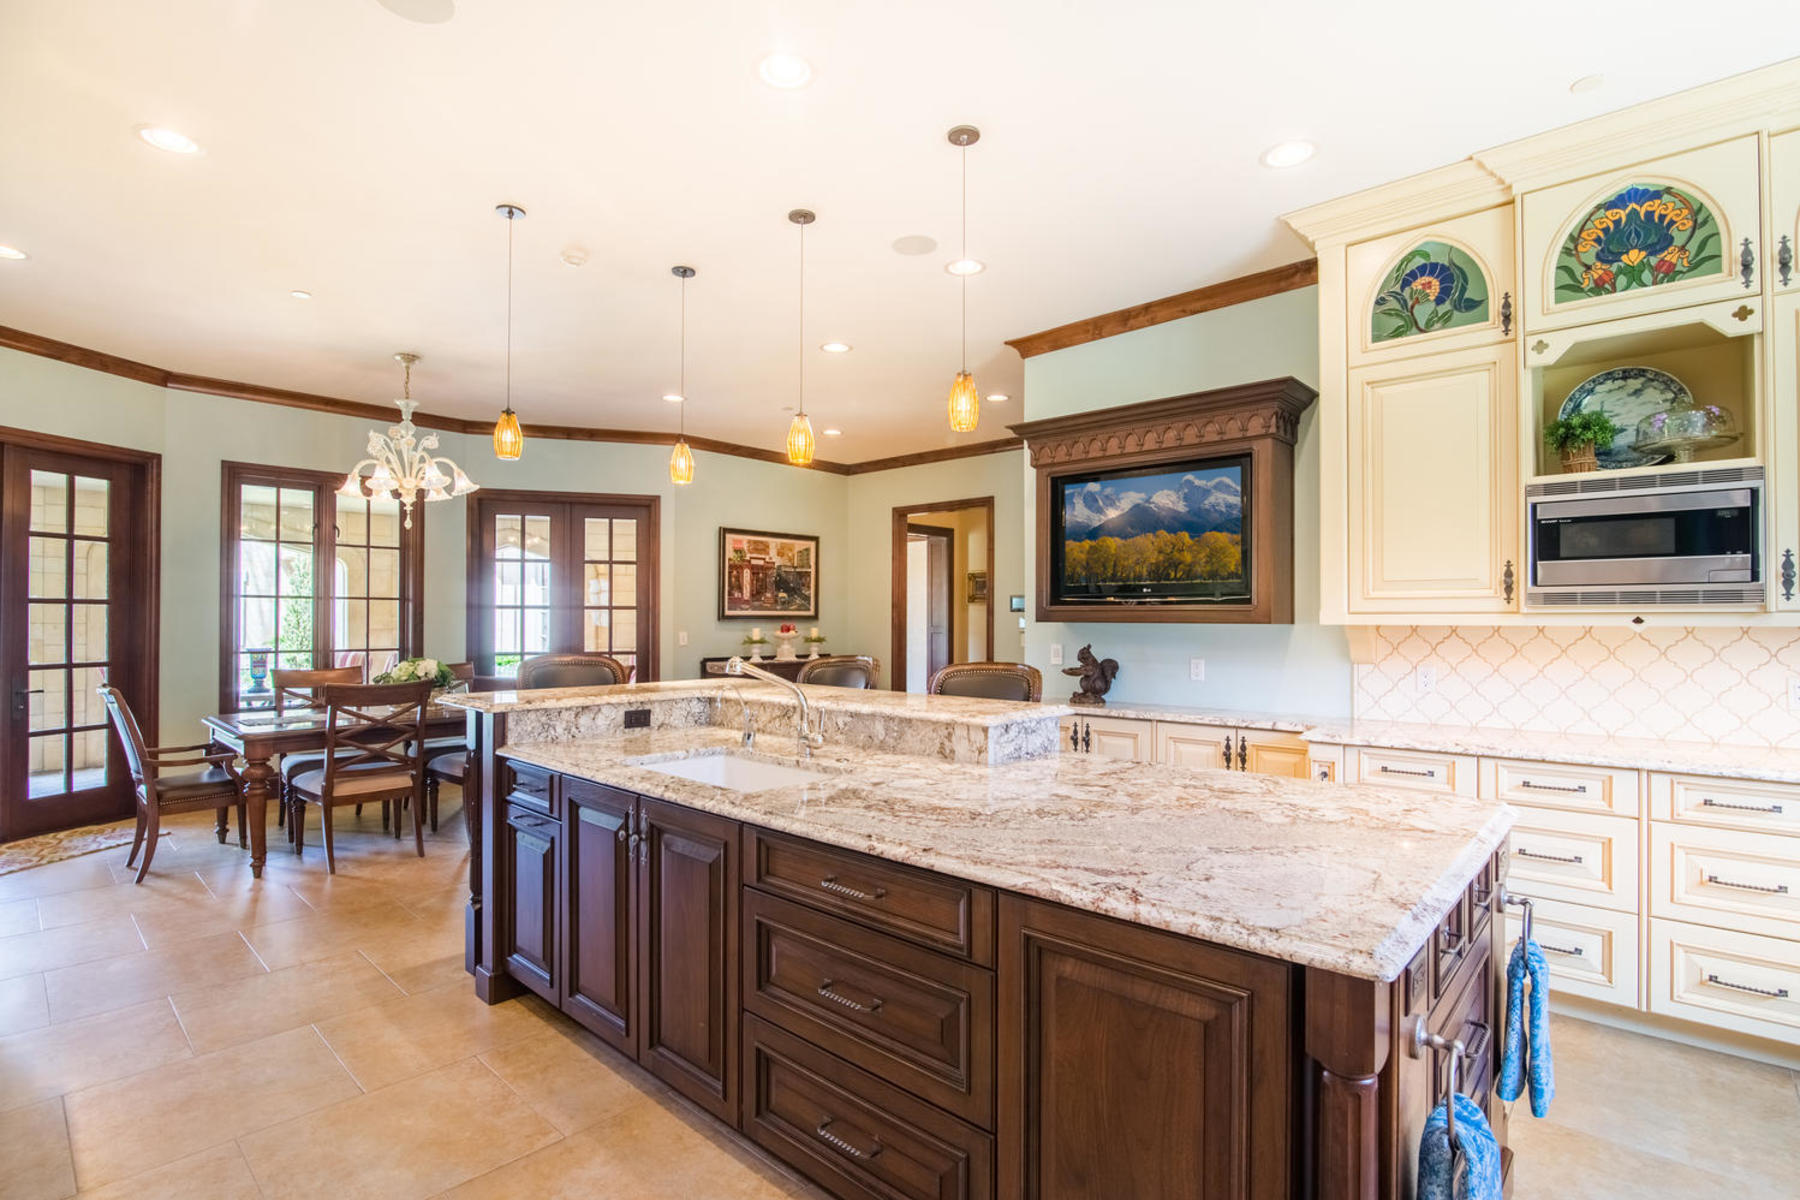 Additional photo for property listing at This English manor home is nestled on 2.5 serene acres in Cherry Hills Village! 1 Tenaya Ln Cherry Hills Village, Colorado 80113 United States